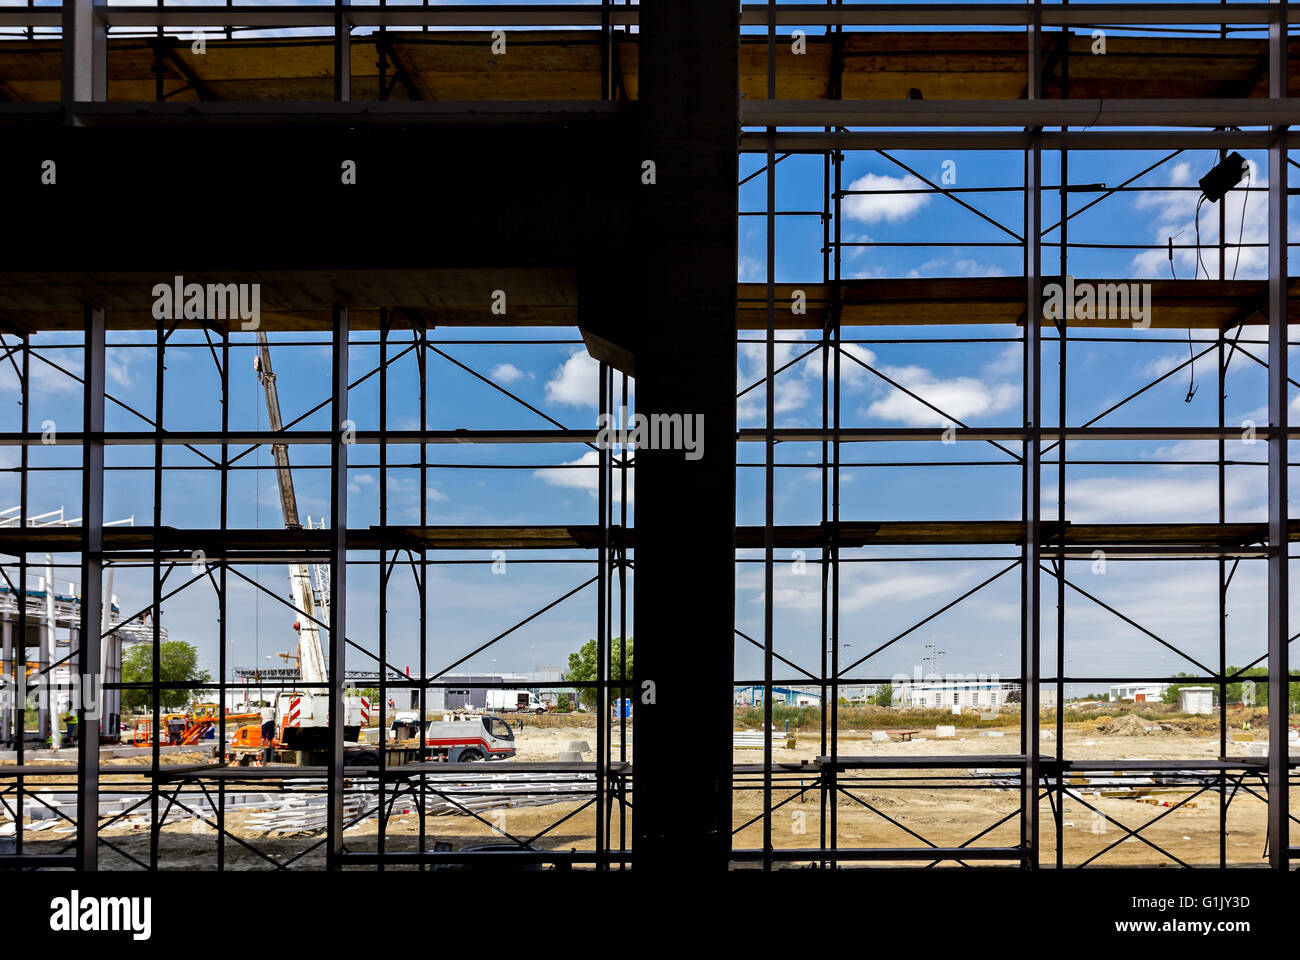 Silhouette of empty scaffolding in the construction site with back light from outside. - Stock Image